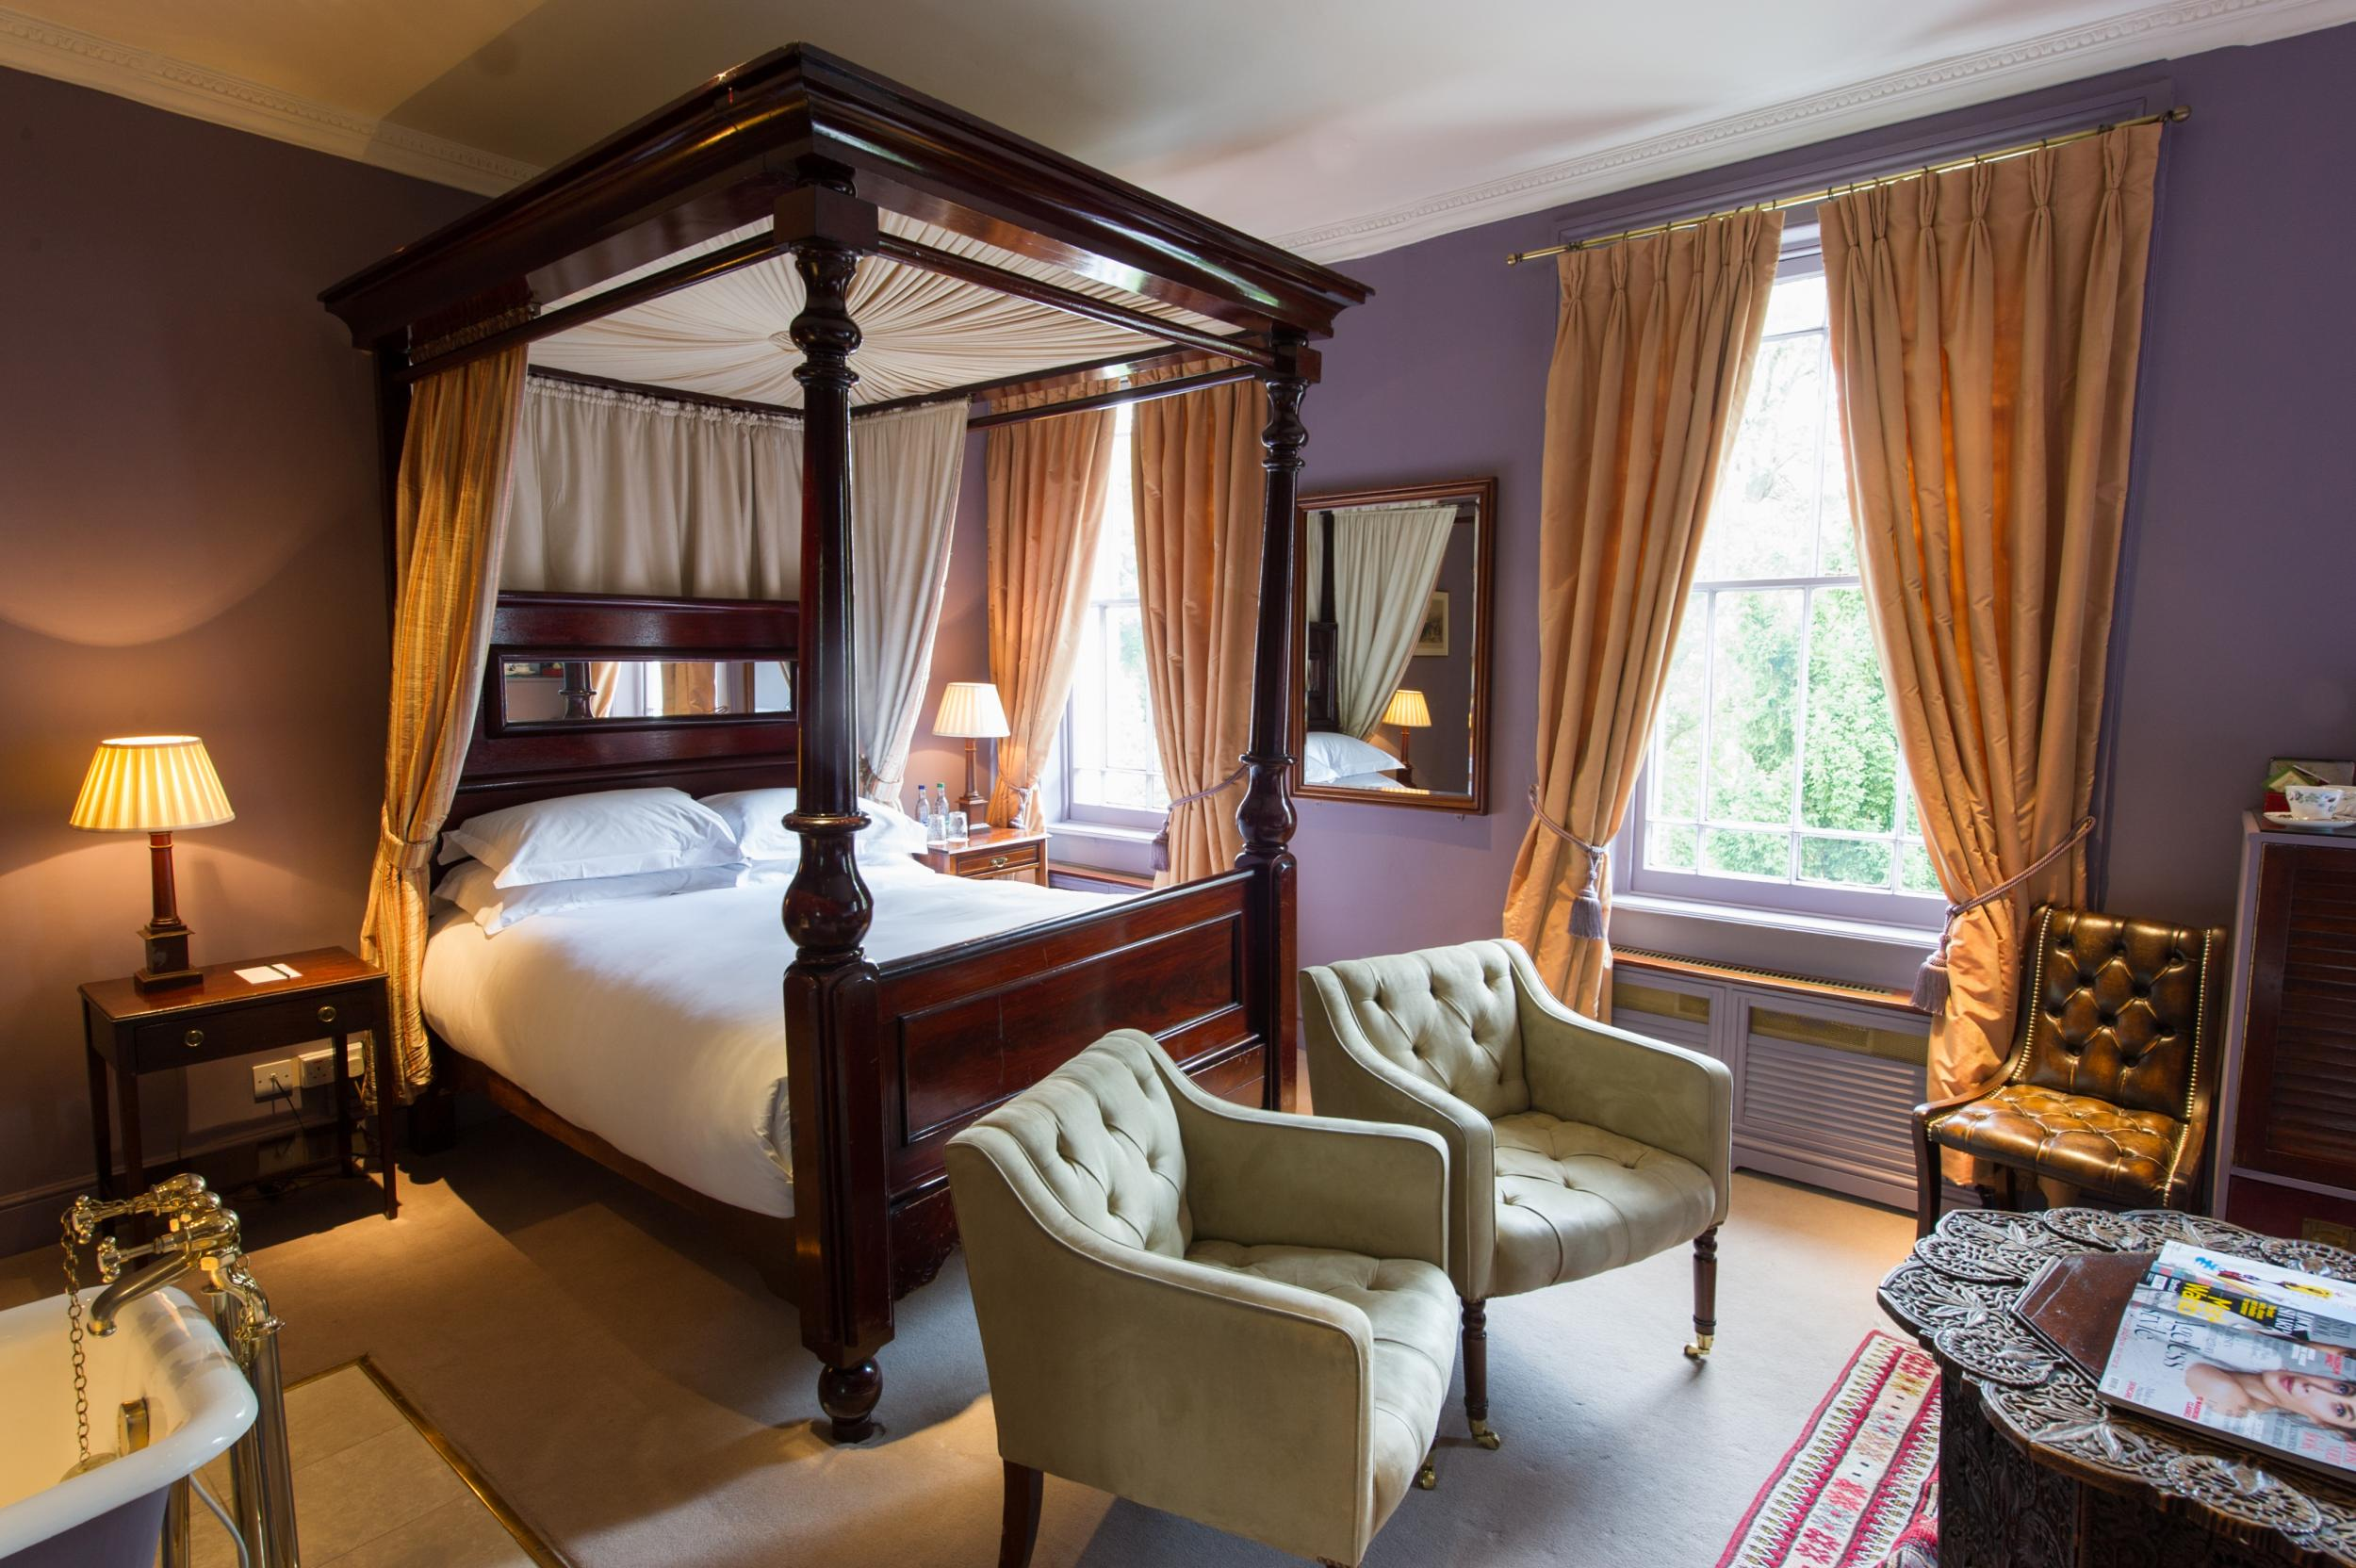 10 hotels for a romantic british break the independent. Black Bedroom Furniture Sets. Home Design Ideas